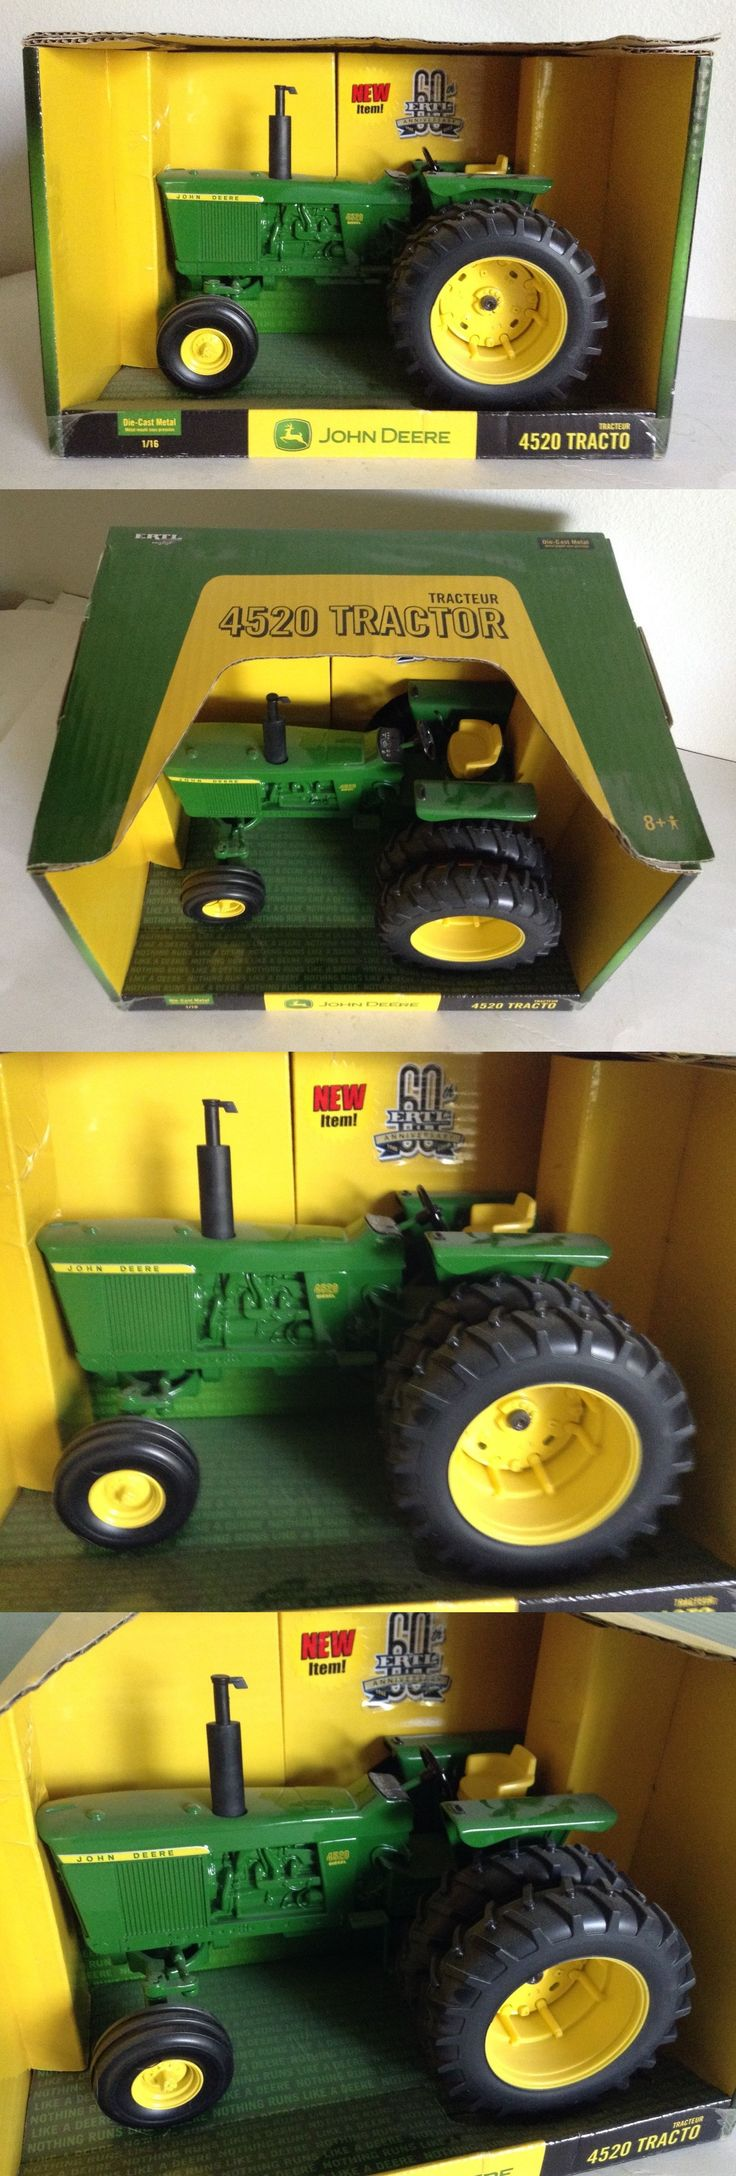 Vintage Manufacture 741: John Deere 4520 Diesel Toy Tractor W Duals Ertl 1 16 New And Hard To Find! -> BUY IT NOW ONLY: $58 on eBay!